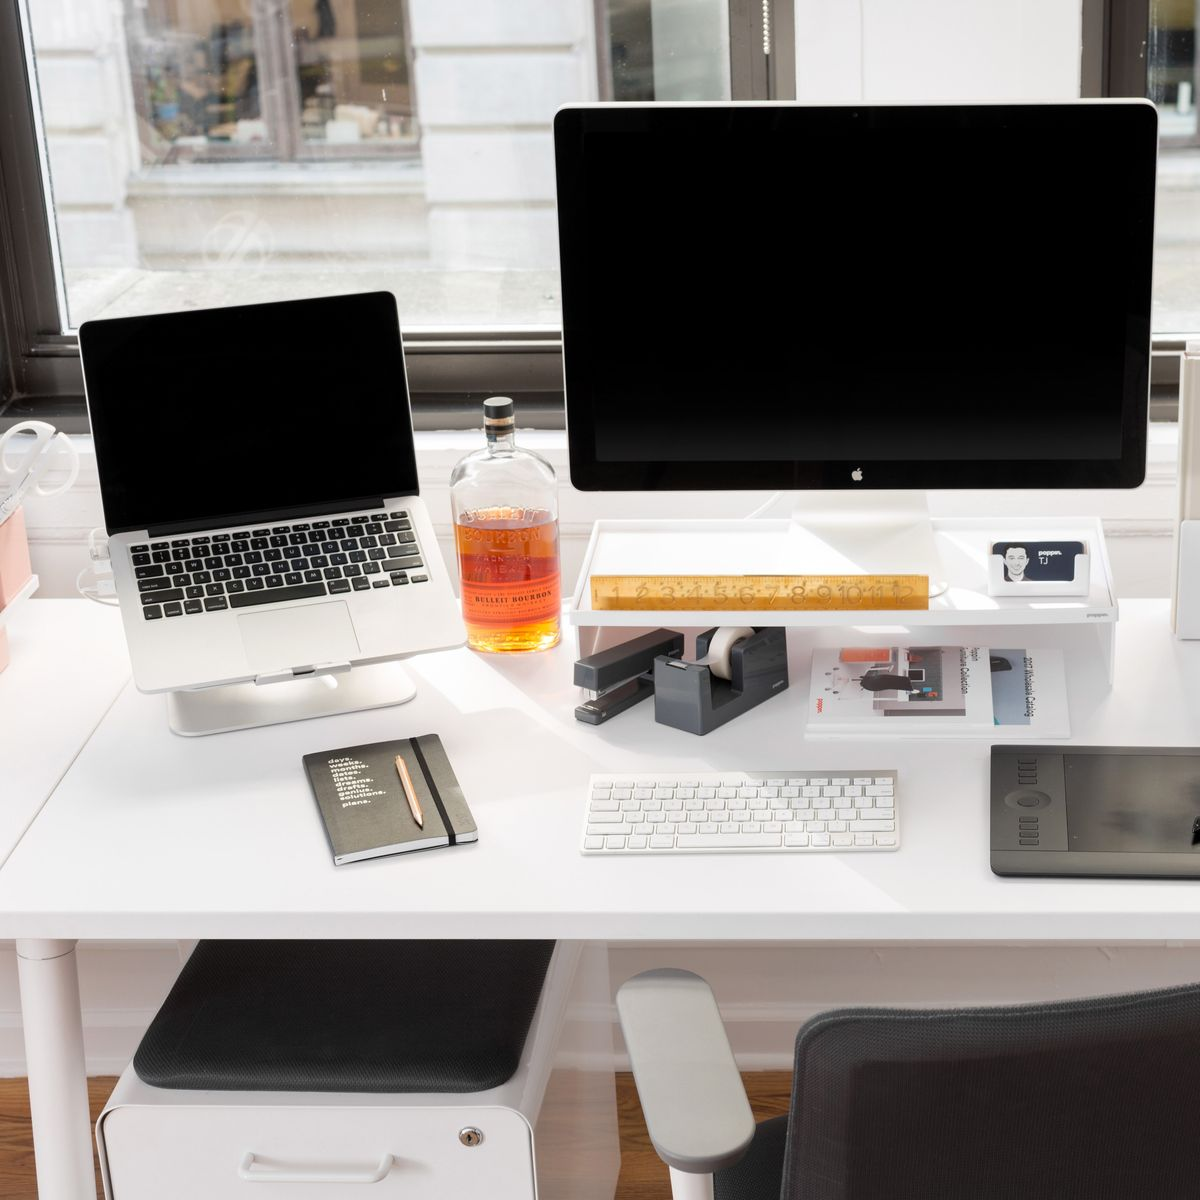 The Best Desk Decor And Desk Accessories 2018 The Strategist New York Magazine,Top Christmas Gifts 2016